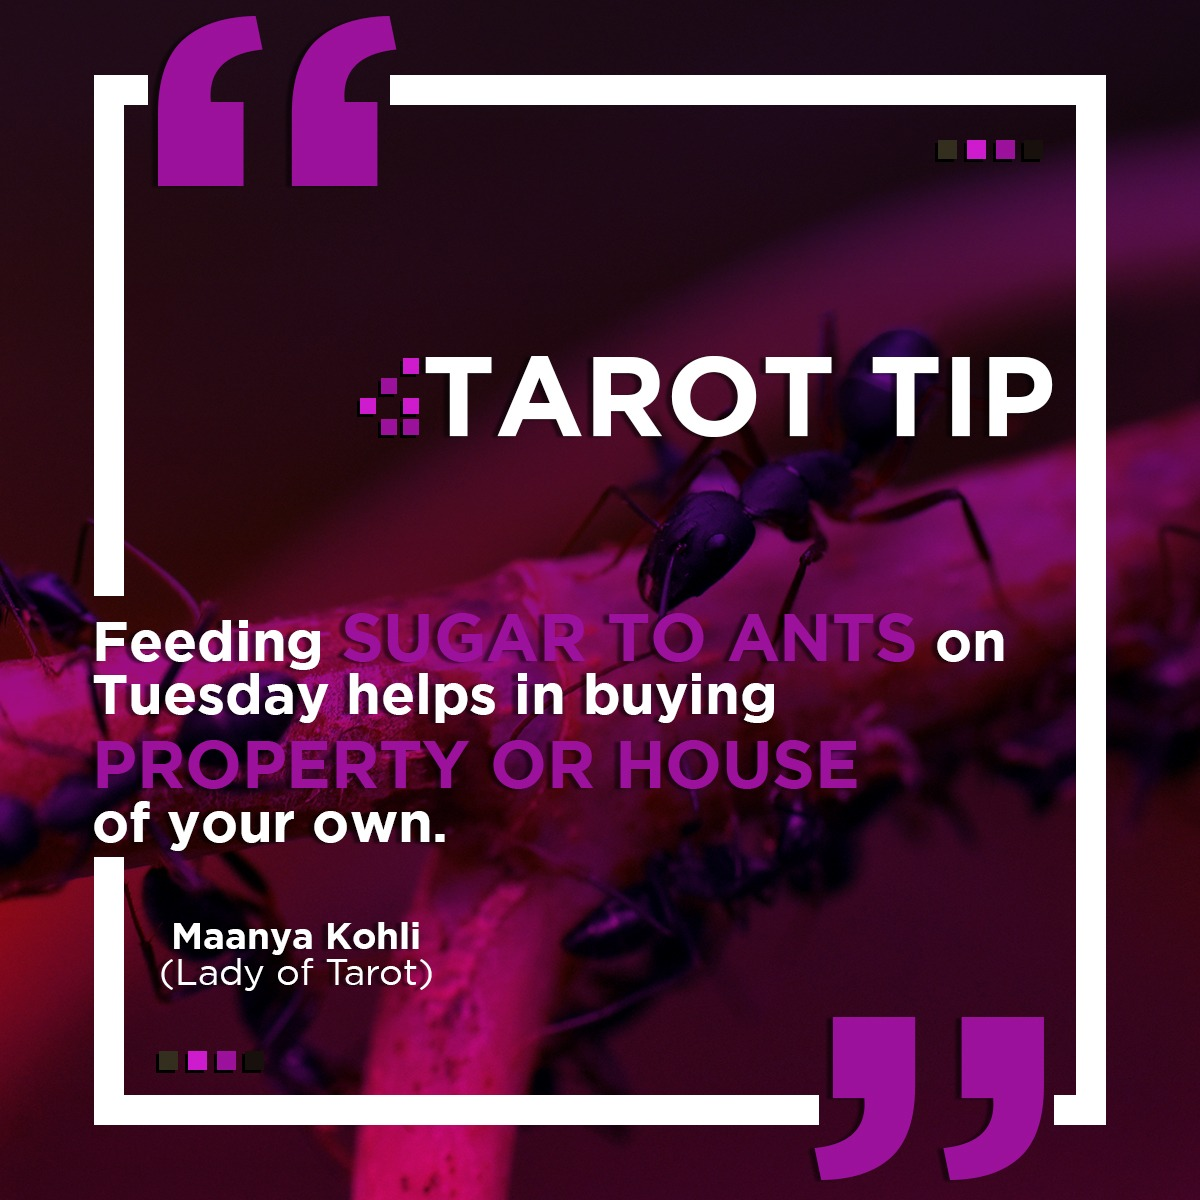 Tarot tip to buy your own home or property.